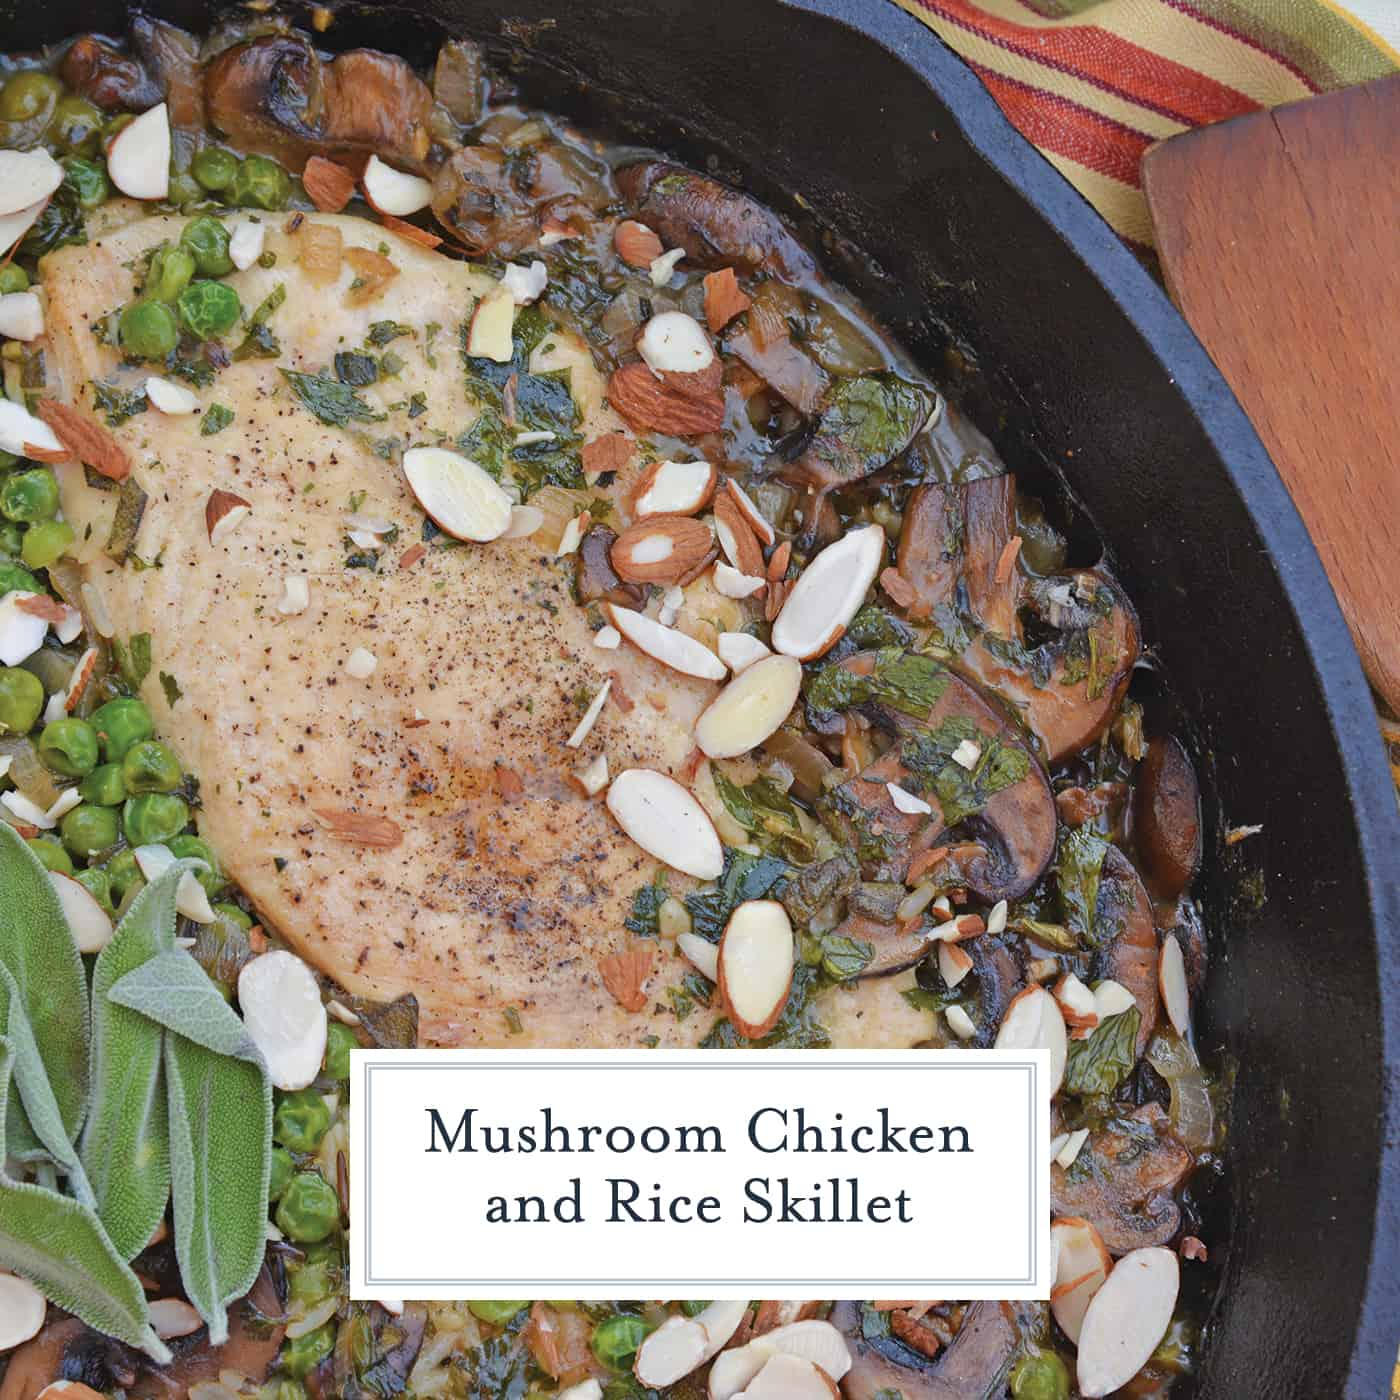 Mushroom Chicken and Rice Skillet is an easy one dish meal with loads of flavor like peas, mushrooms, shallots, sage and garlic. #onedishmeal #skilletmeal www.savoryexperiments.com